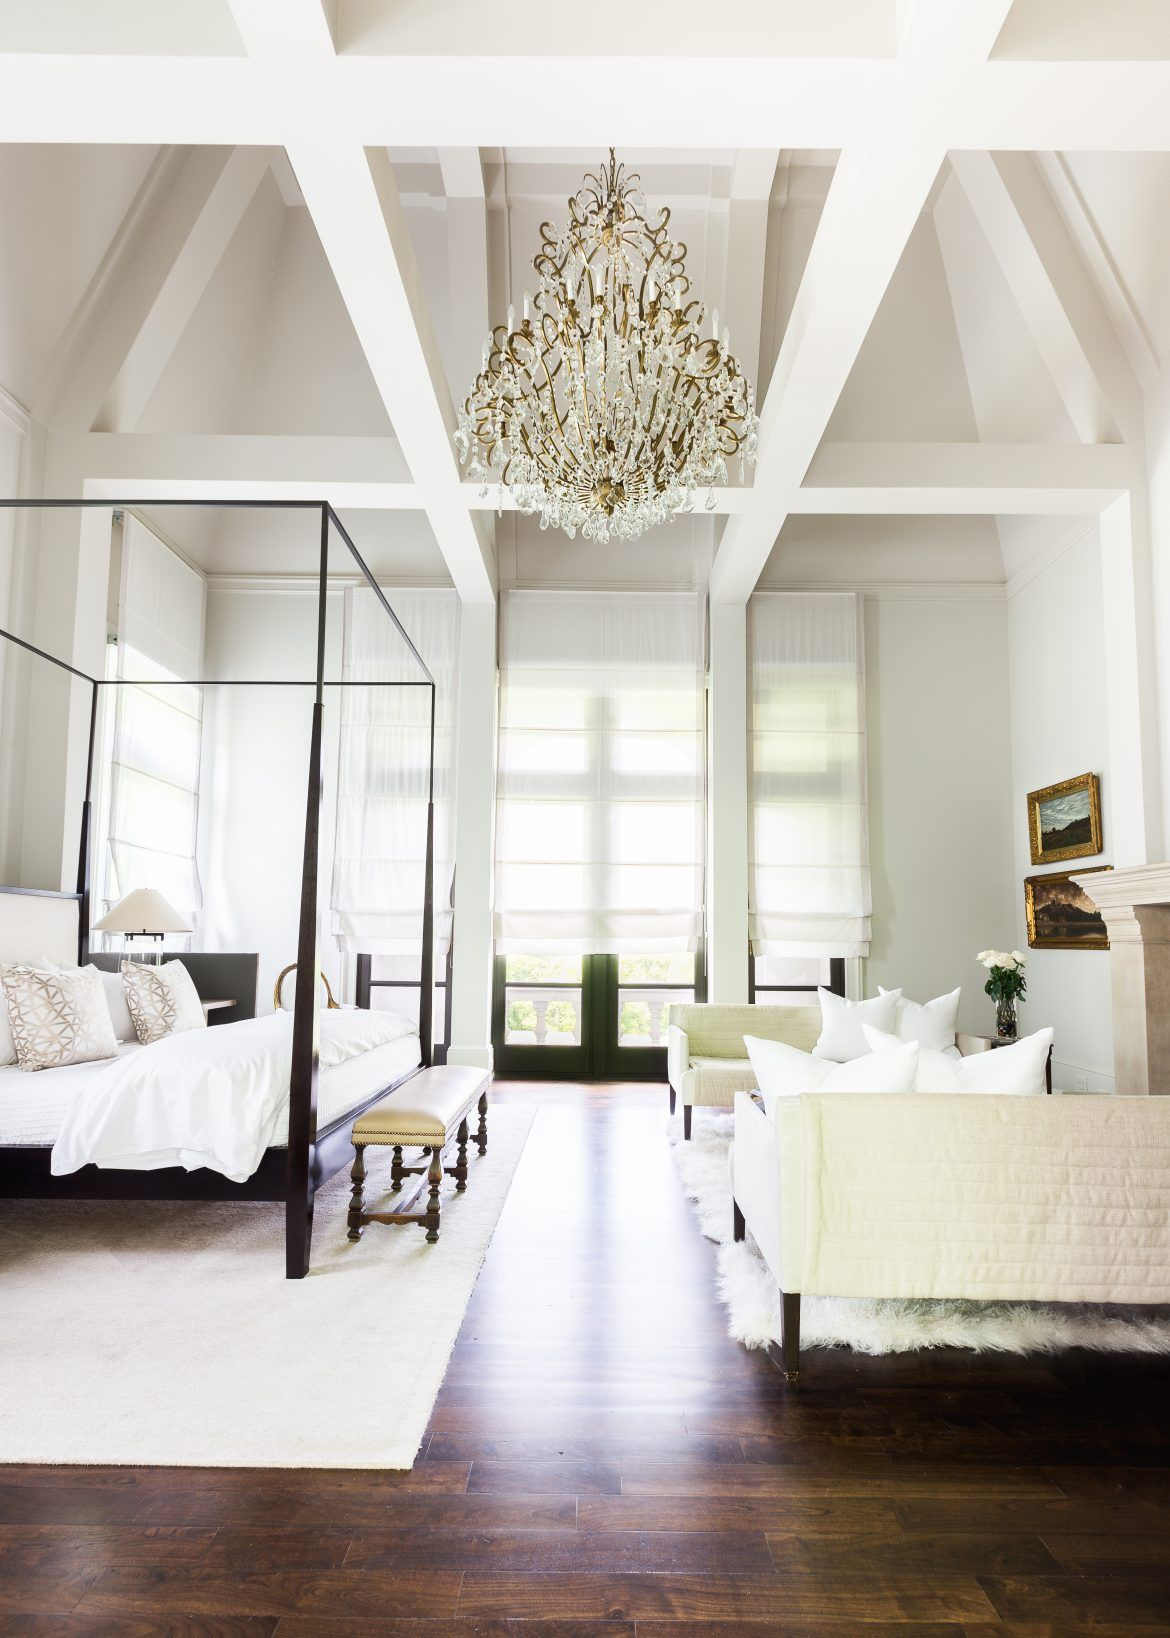 Interior designer chad james on his signature style bedroom